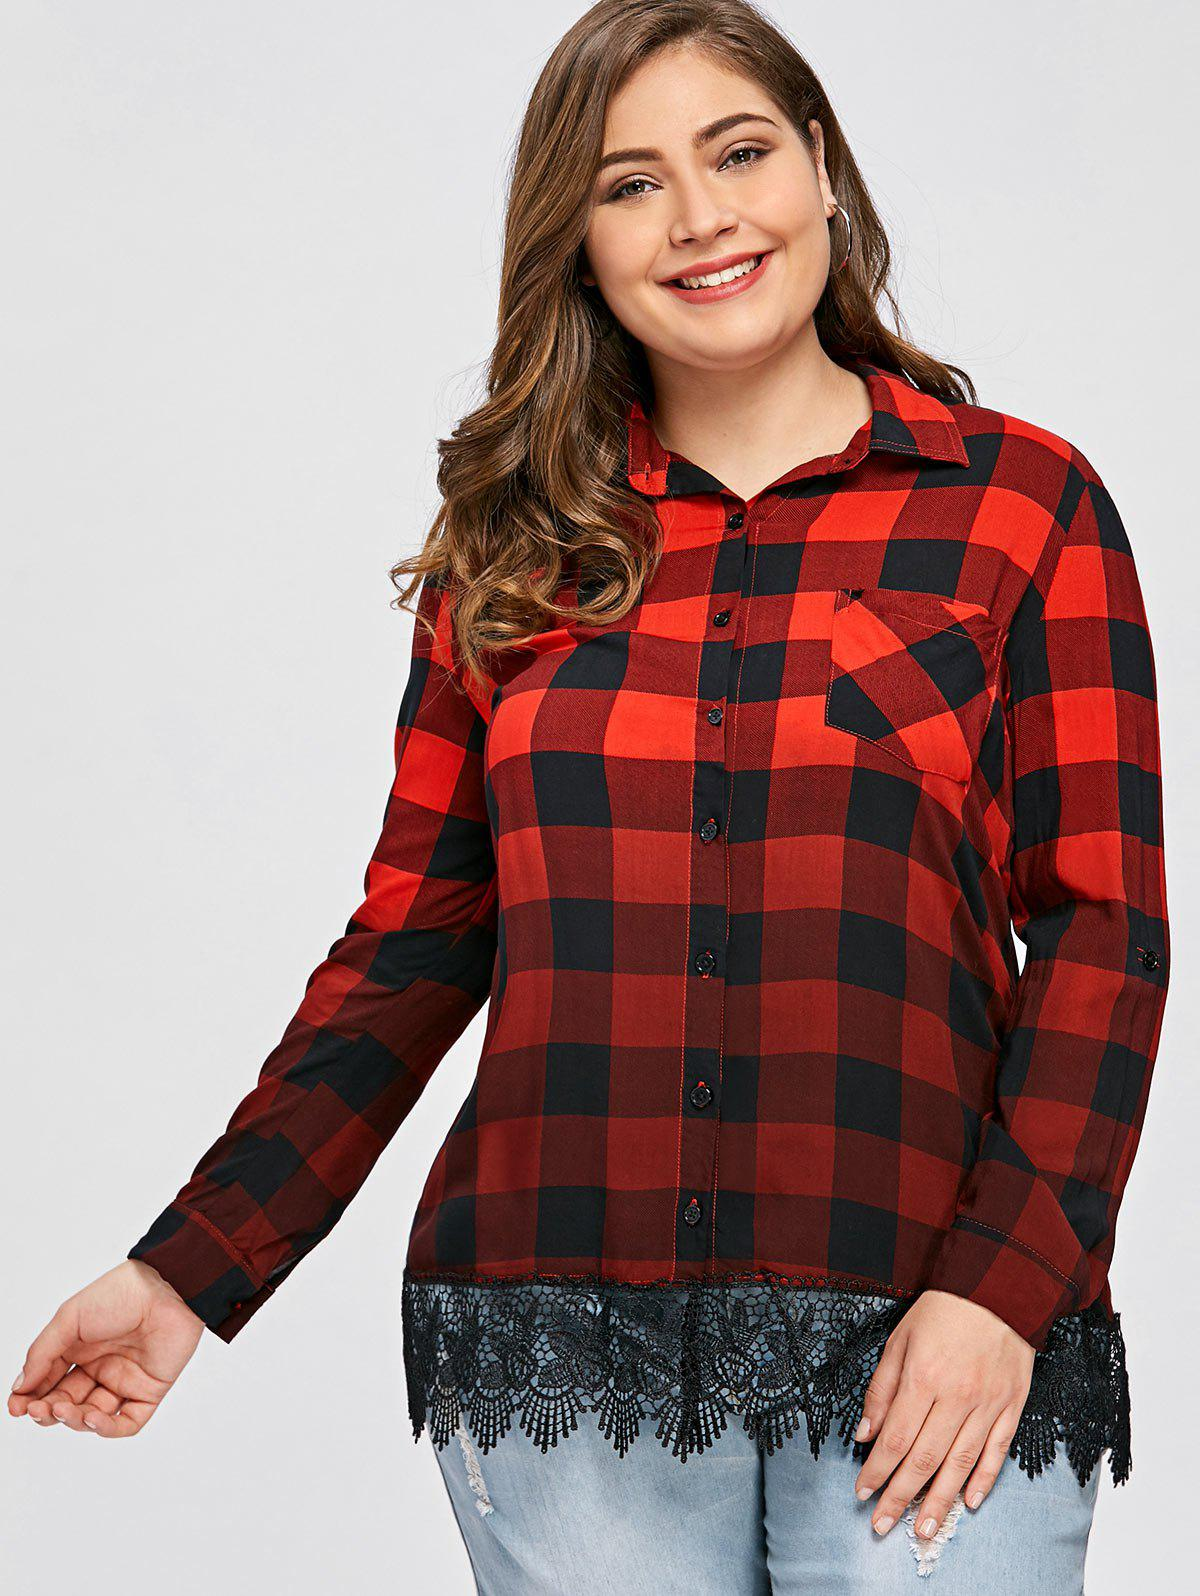 2018 ombre couleur plaid plus size shirt carr xl in. Black Bedroom Furniture Sets. Home Design Ideas